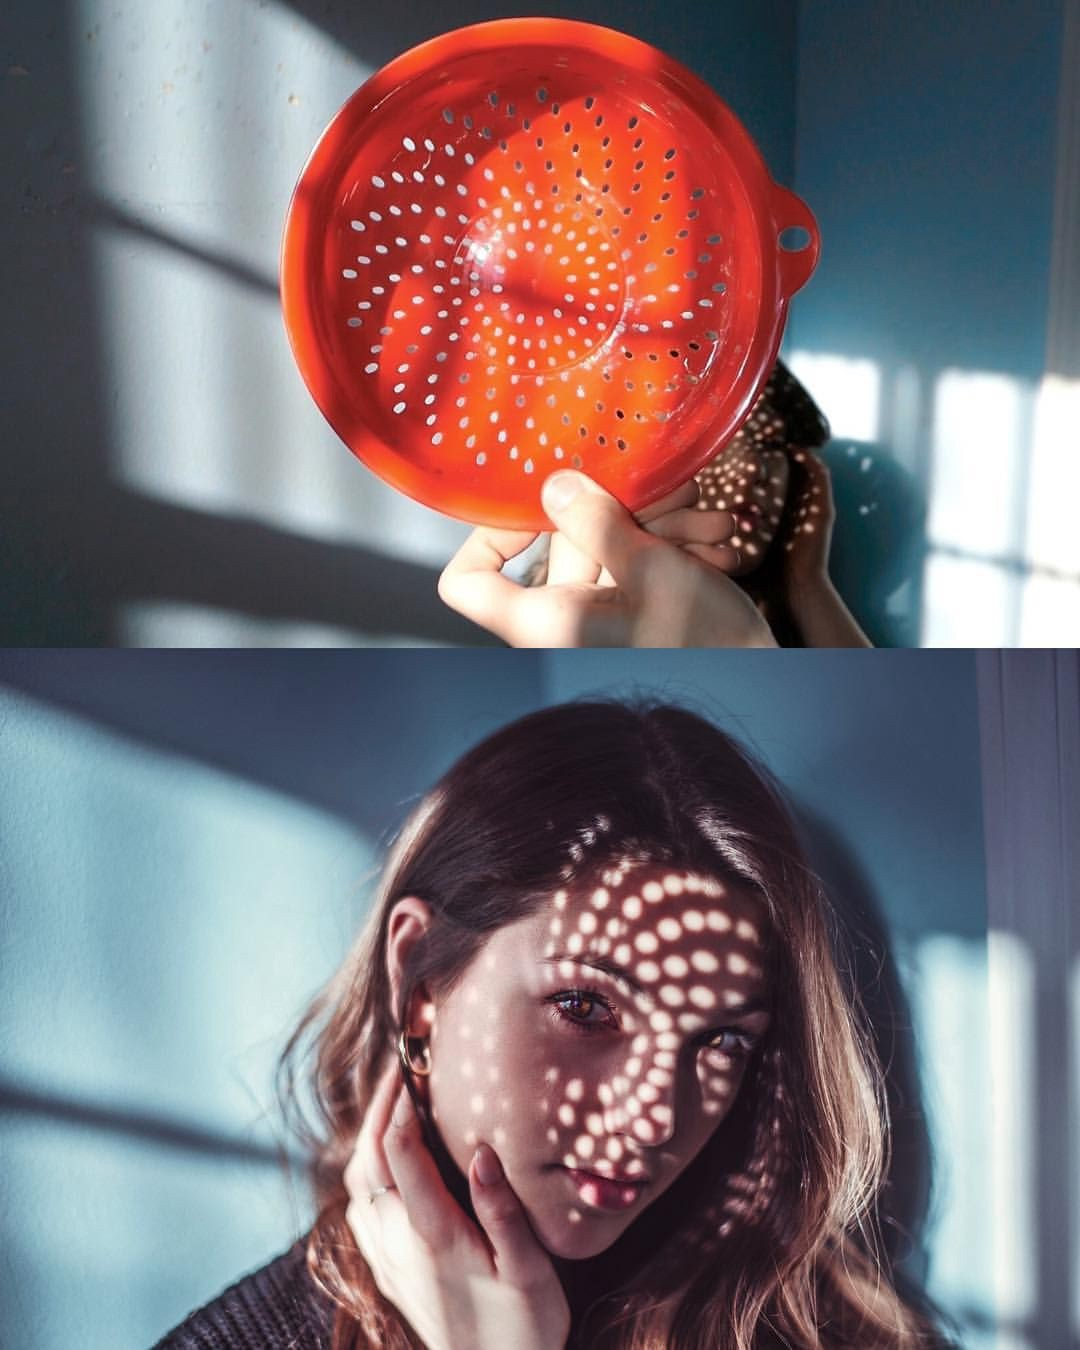 Stunning Photos Like These Can Be Taken Indoors Check Out These Easy Diy Photo Hacks Using Household Items By Jaya One Medium